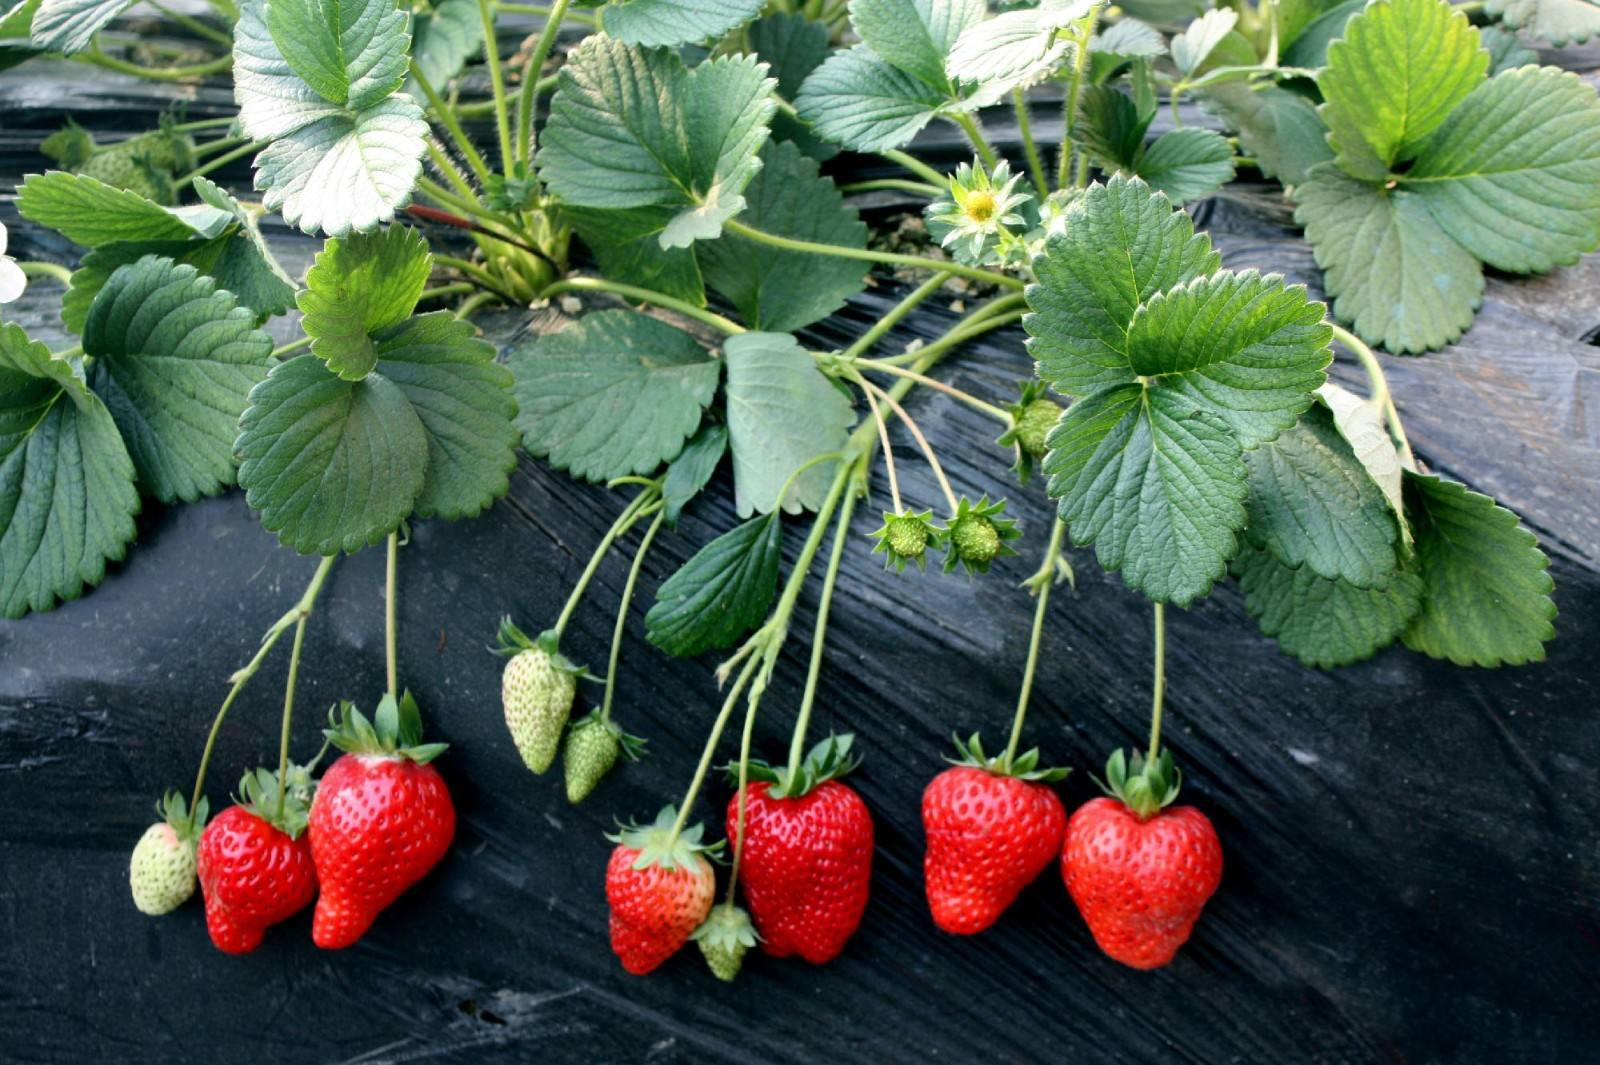 Strawberry irrigation, spray tube or drip tape, which is better?